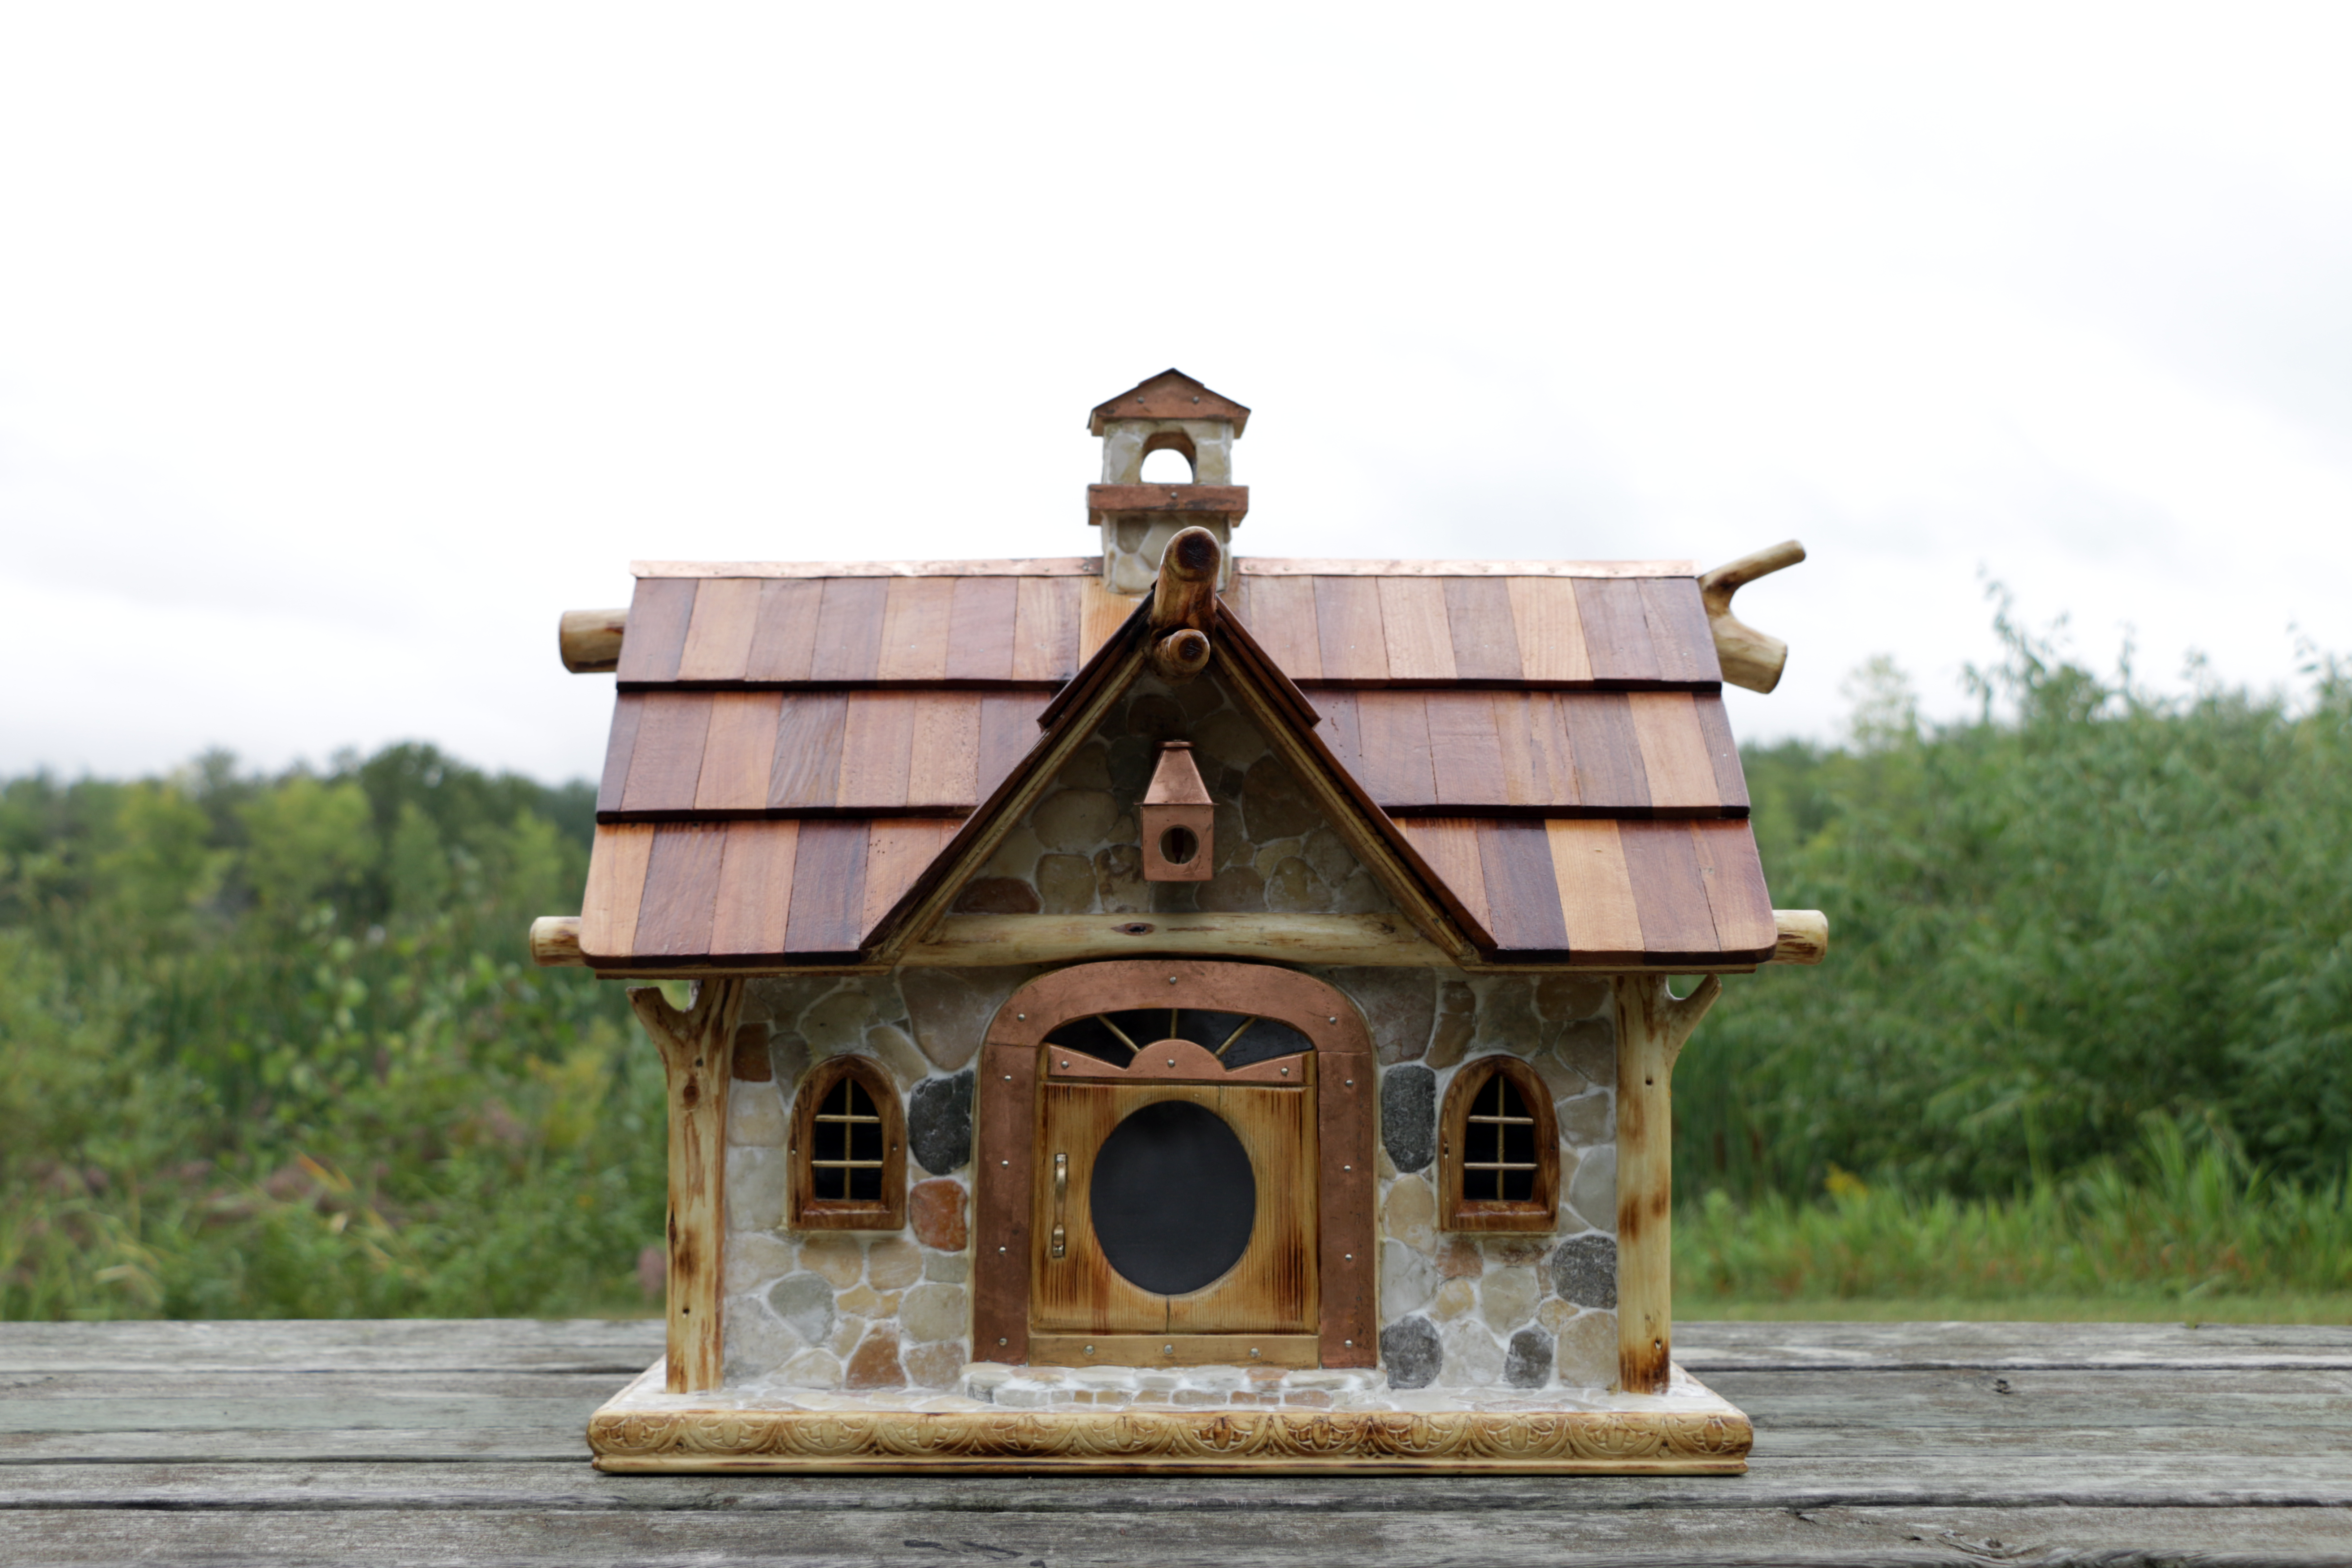 Hand crafted bird feeder resembling a house.